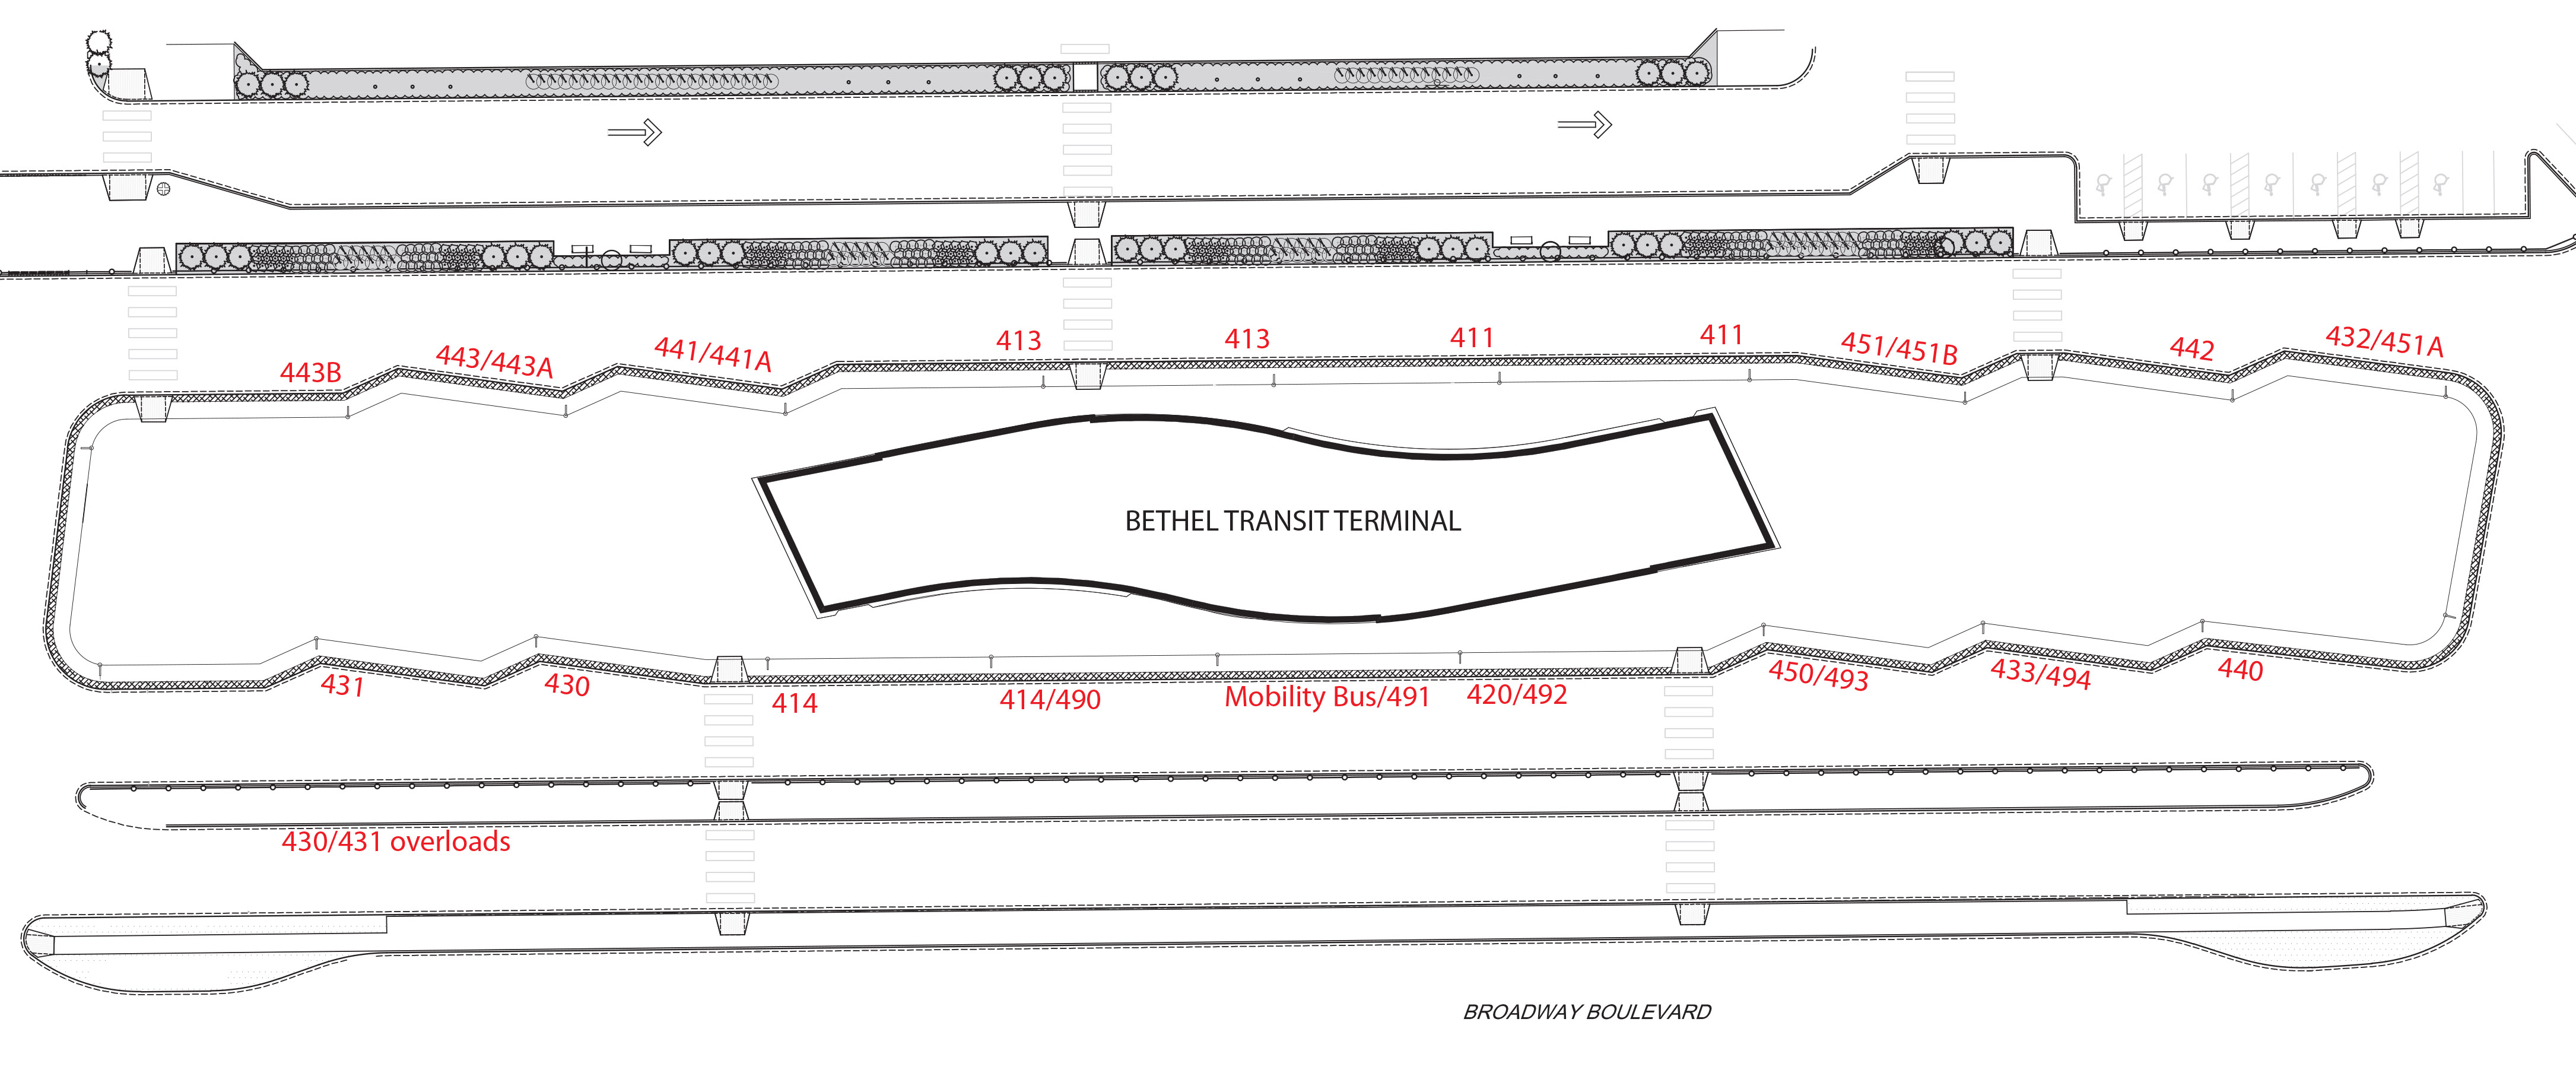 Map of Bethel Transit Terminal bays with corresponding route assignments.